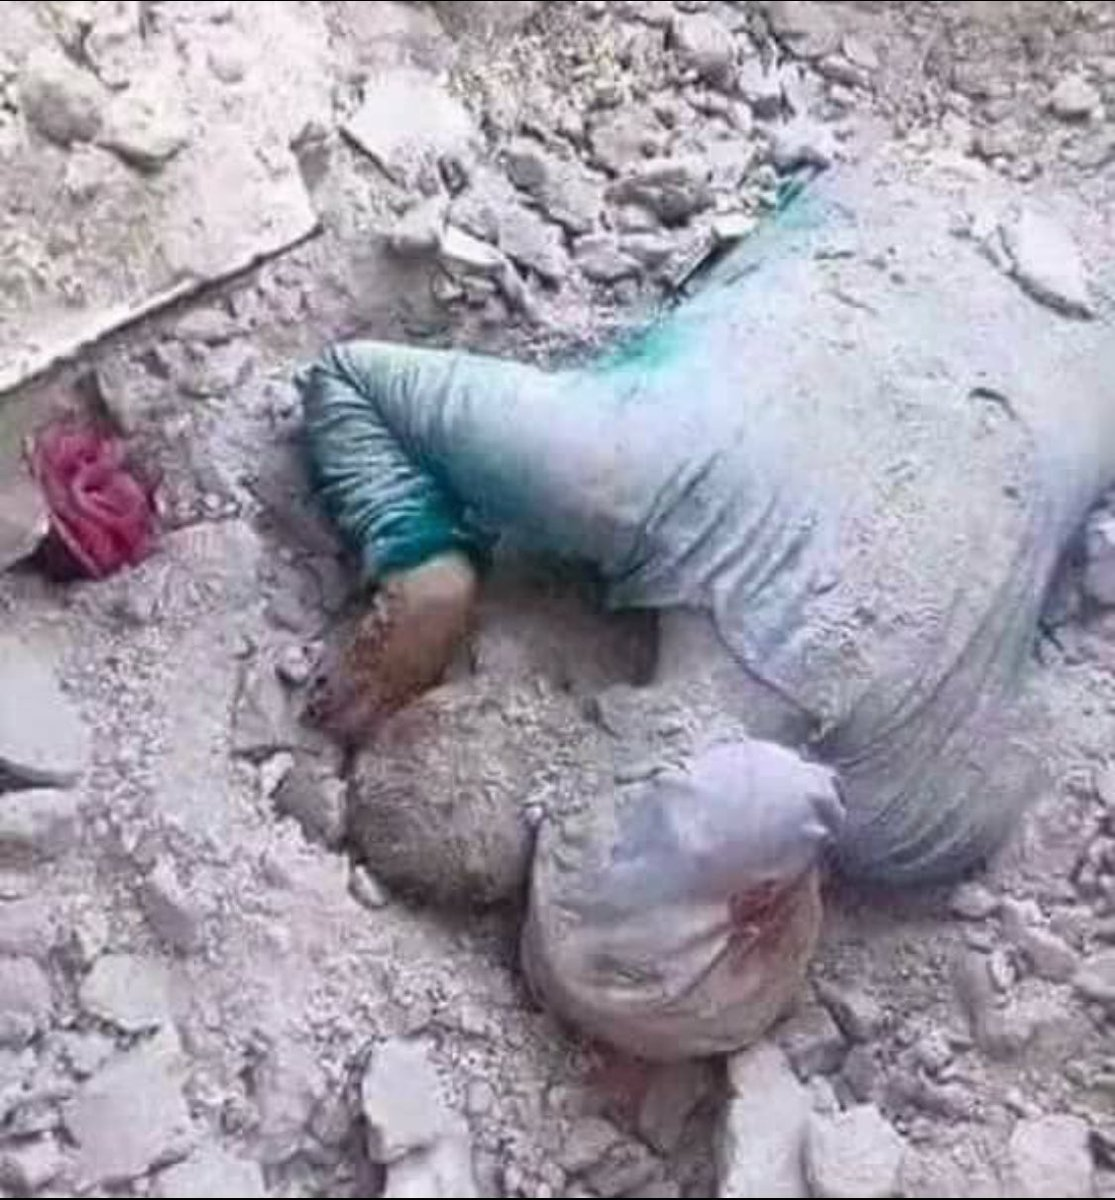 The world is coming to an end or has it already ended for the Syrians ? #SaveSyria #SaveGhouta #SaveSyrianChildren YA ALLAH RAHAM.